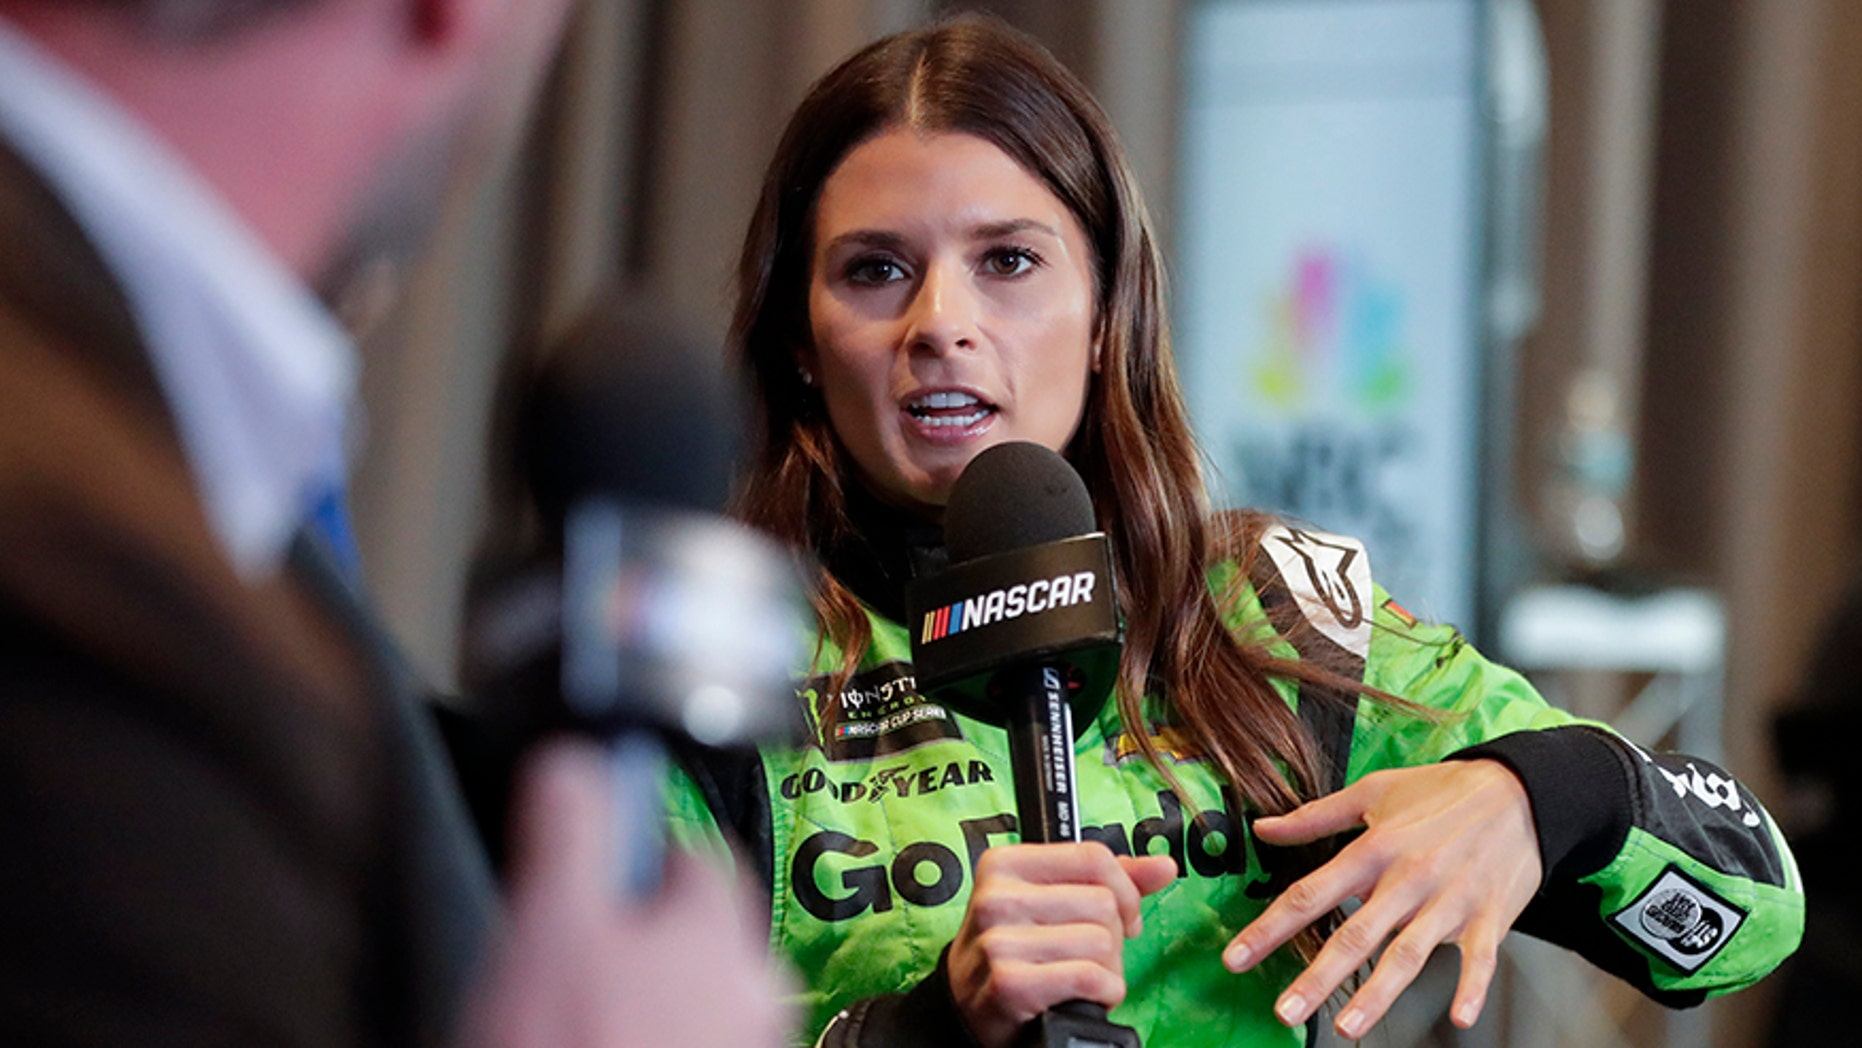 Danica Patrick let slip some big news while speaking to reporters at media day for the Daytona 500 on Wednesday.